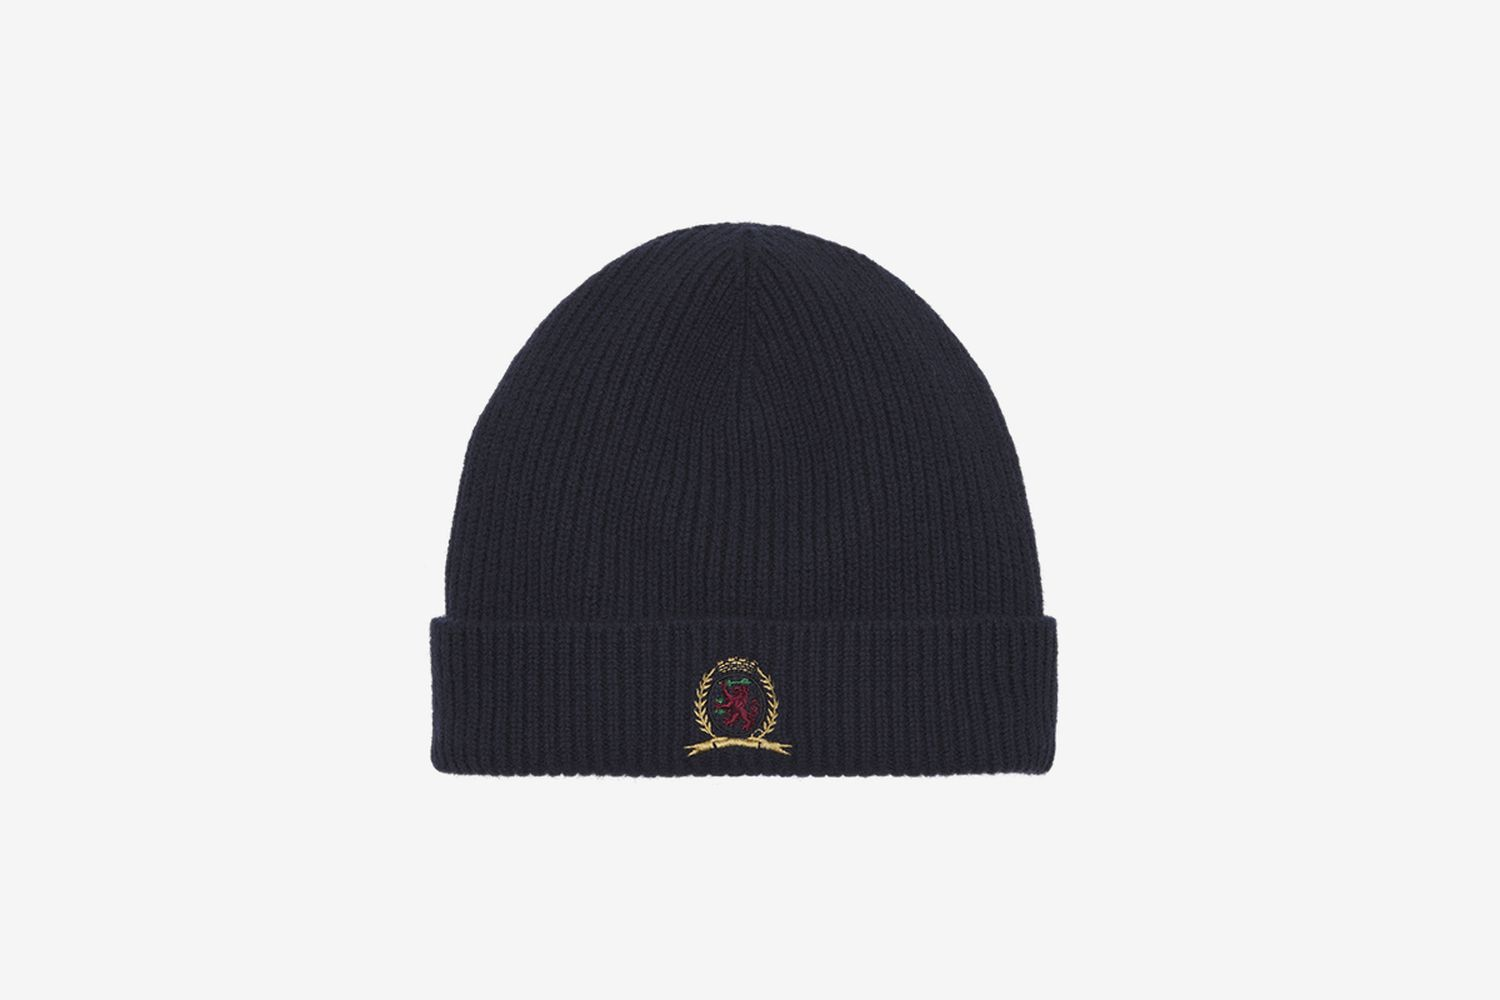 Hilfiger Collection Crest Classic Knitted Hat